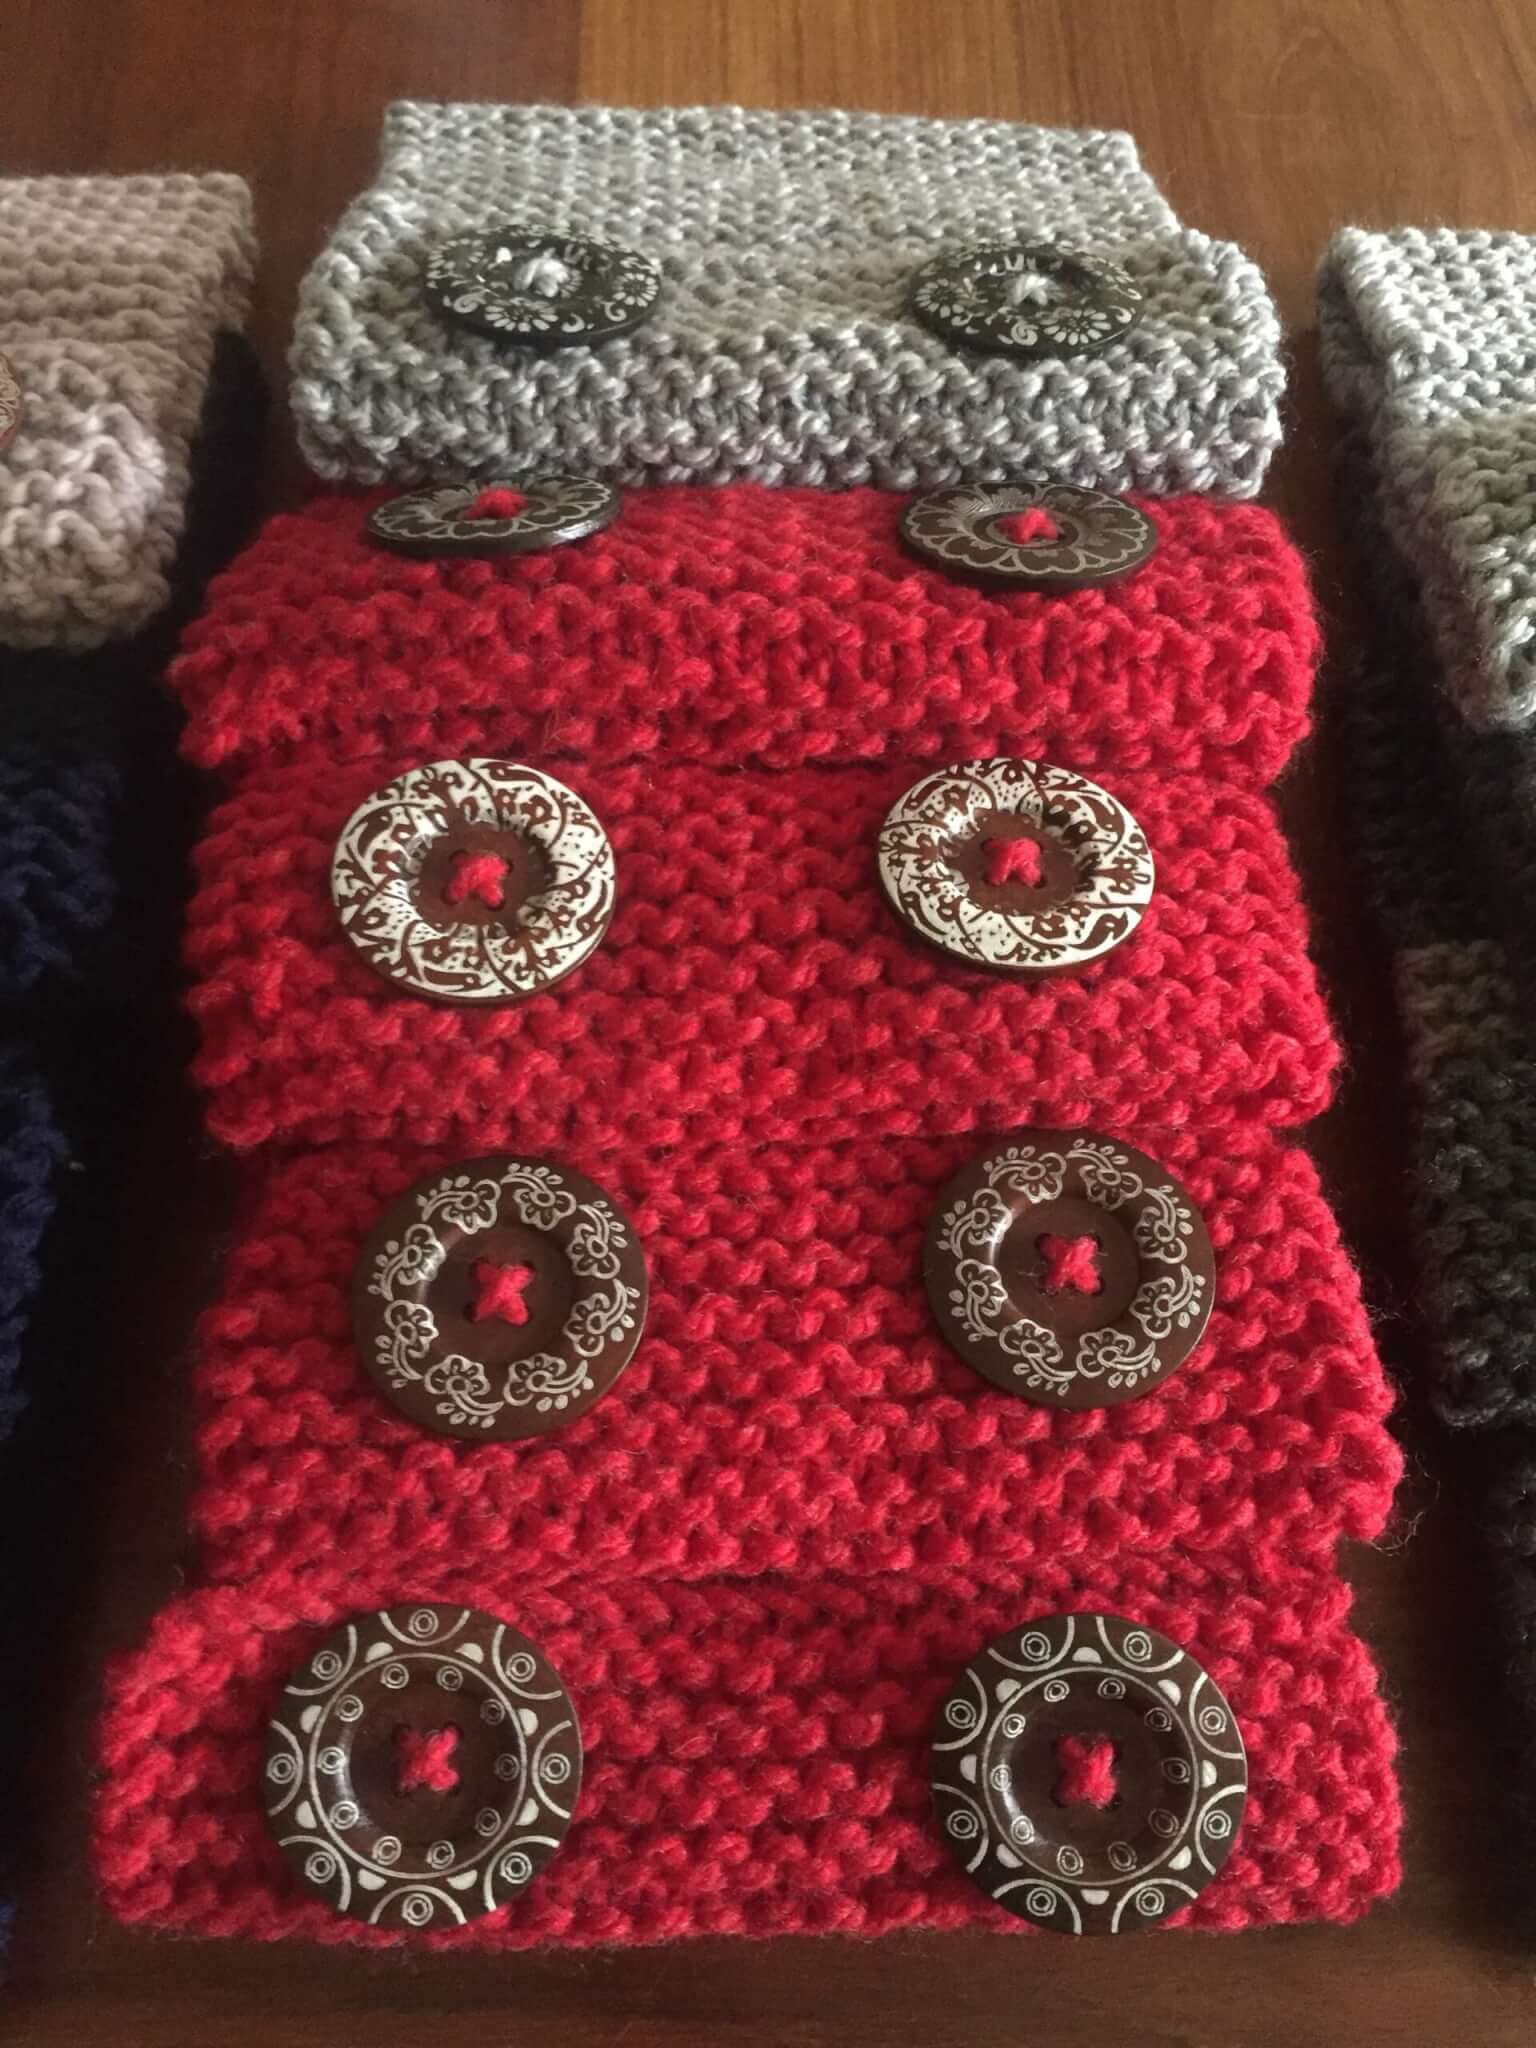 cowls close up bright red